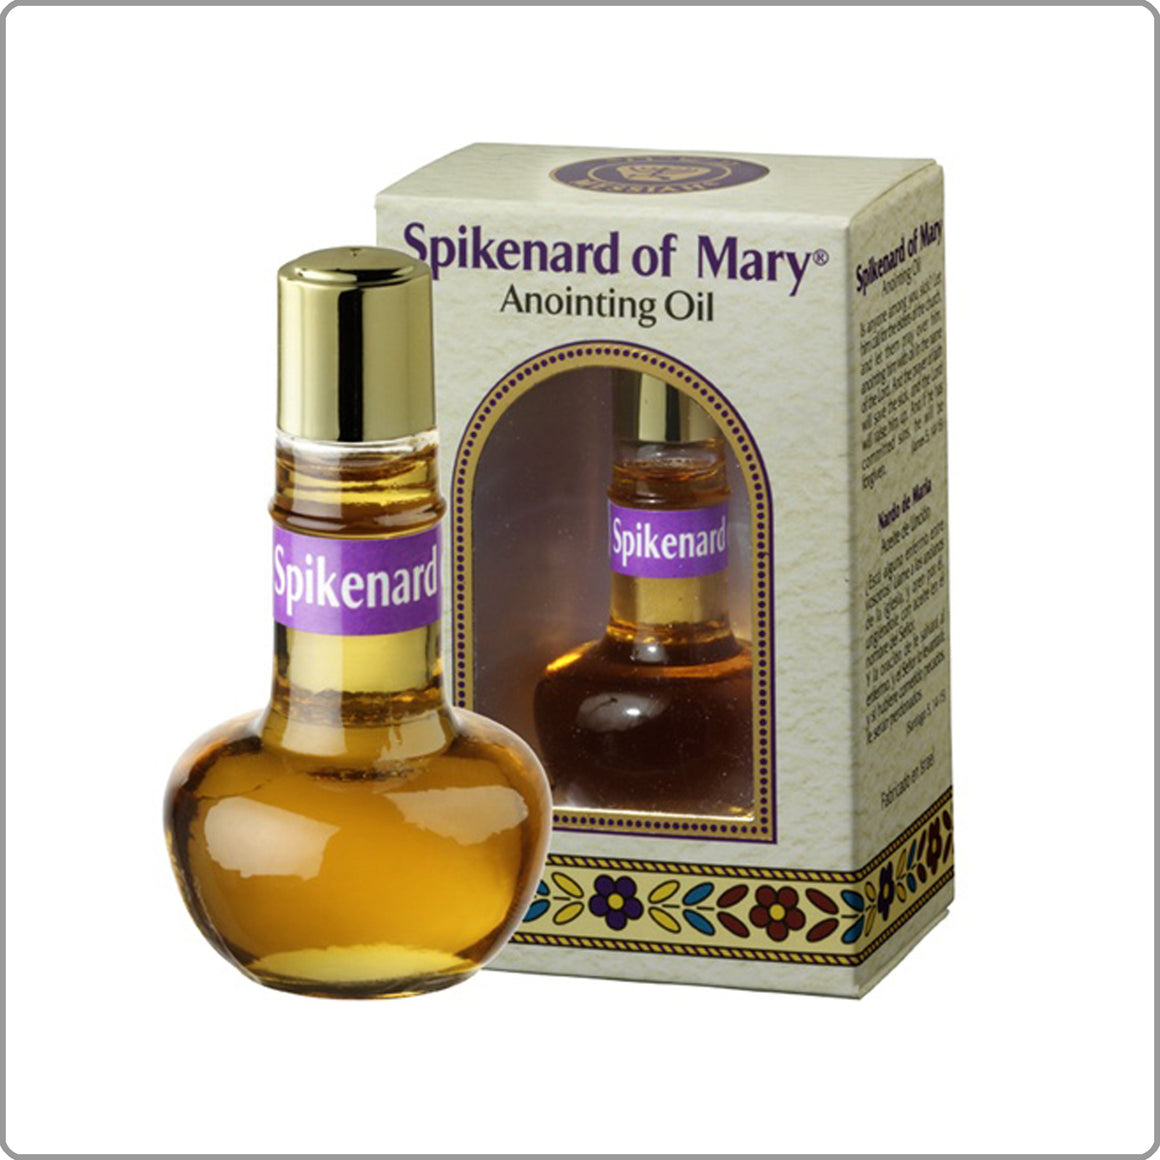 Spikenard of Mary - Anointing Oil 8 ml.